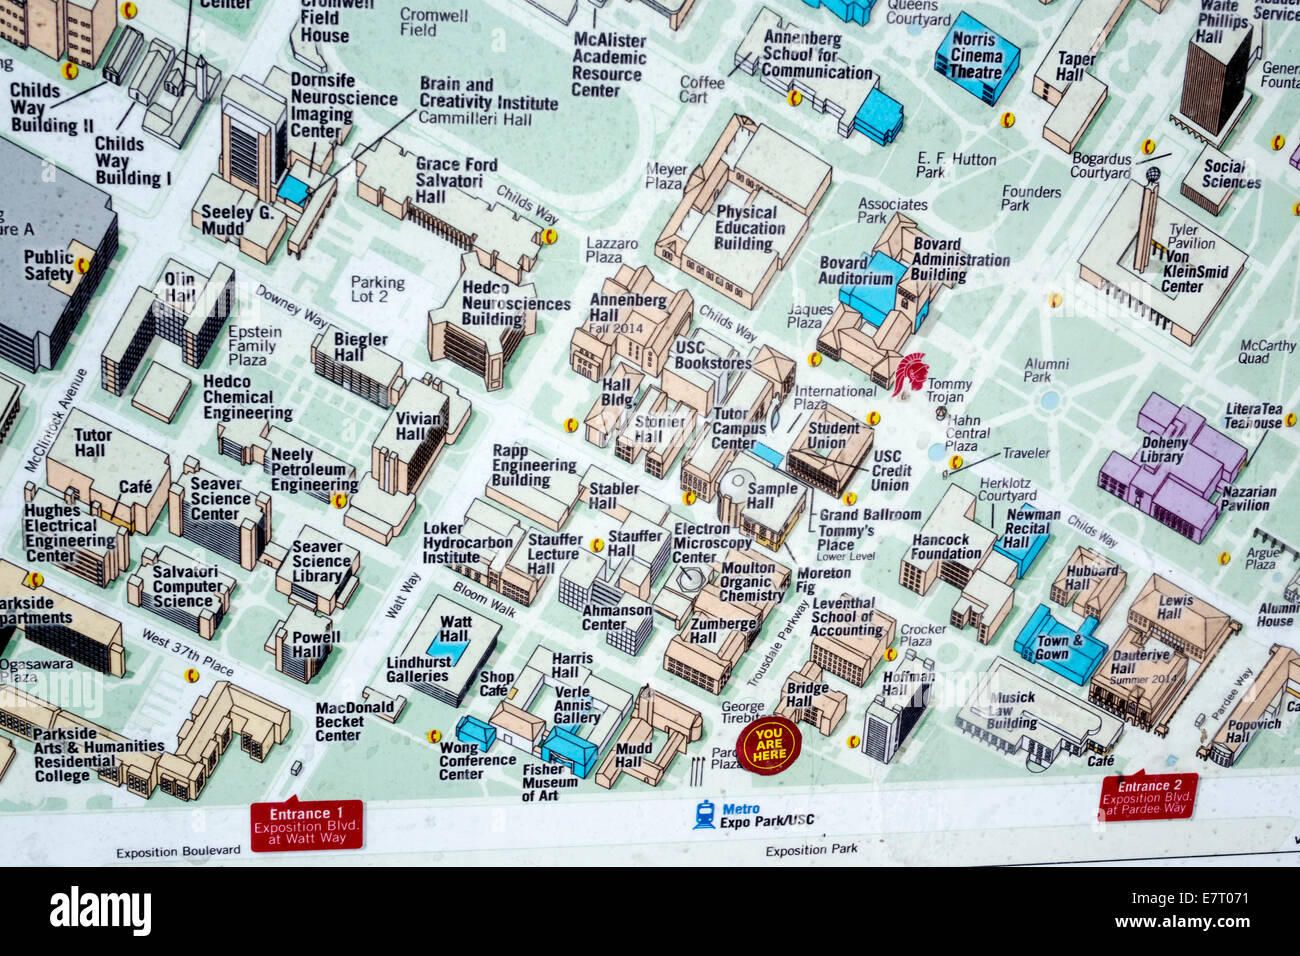 Map Of Usc La Pictures To Pin On Pinterest PinsDaddy - Map of usc columbia